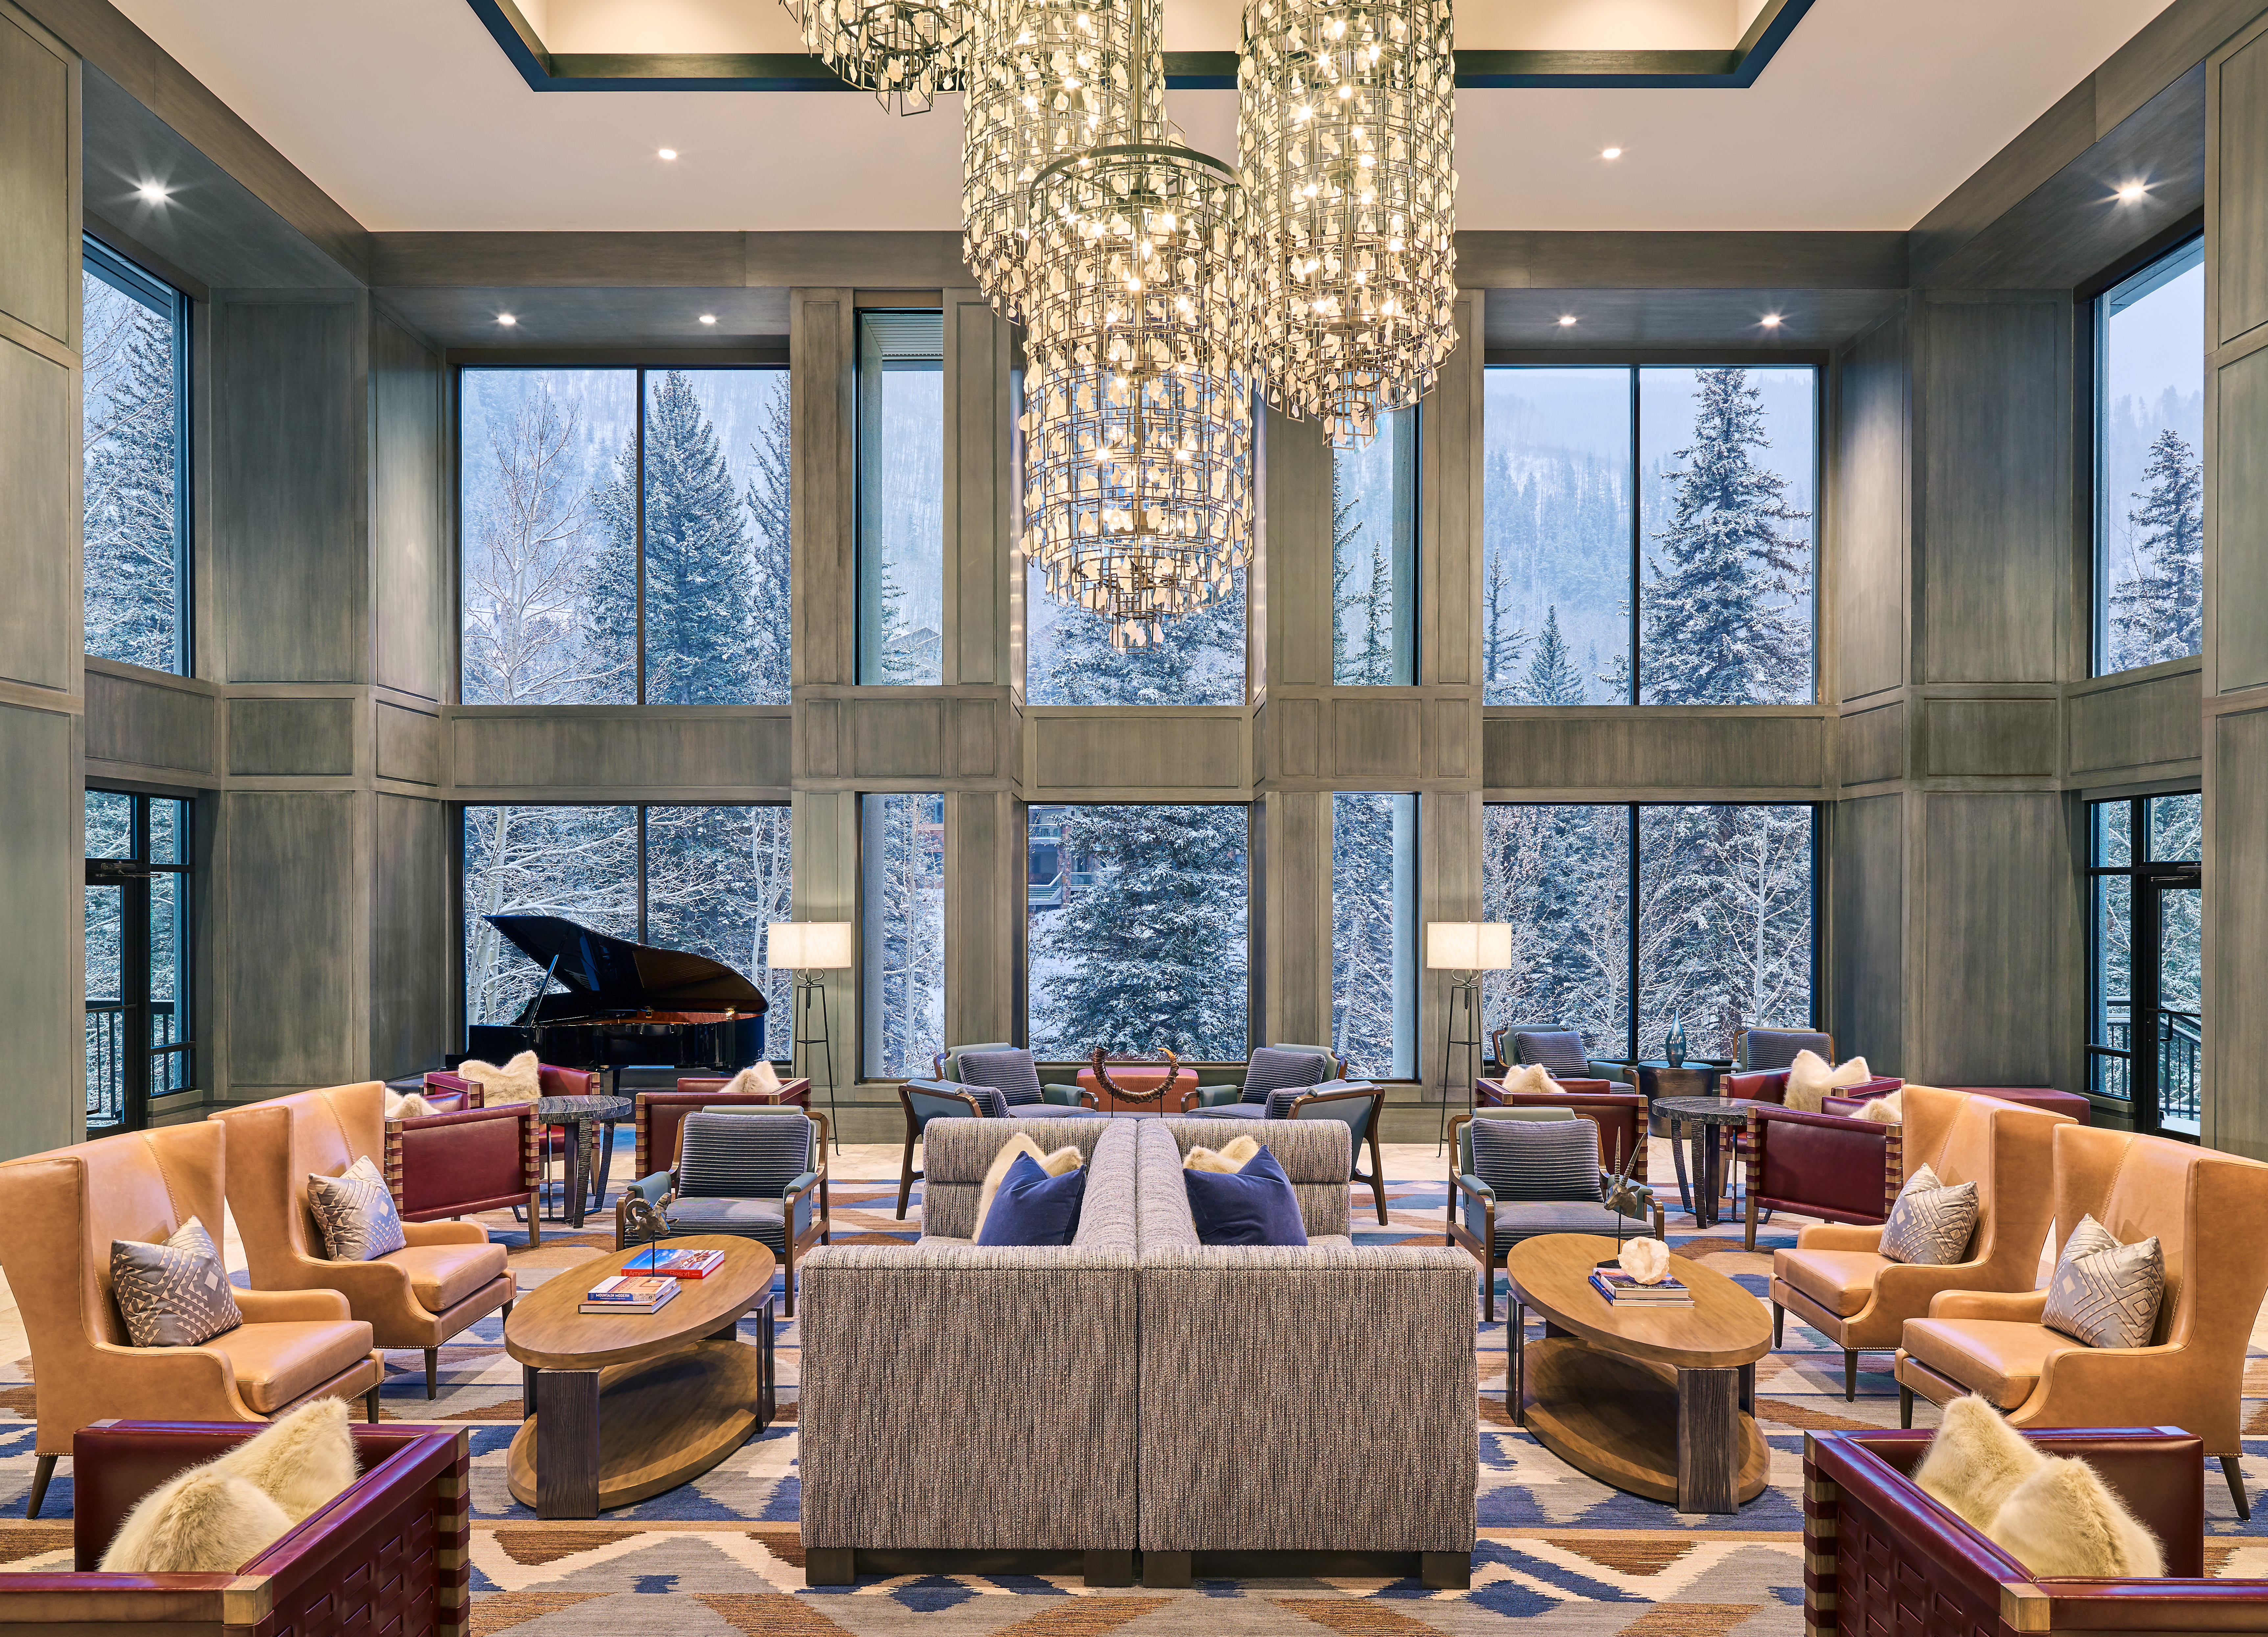 8 new ski hotels to try this winter